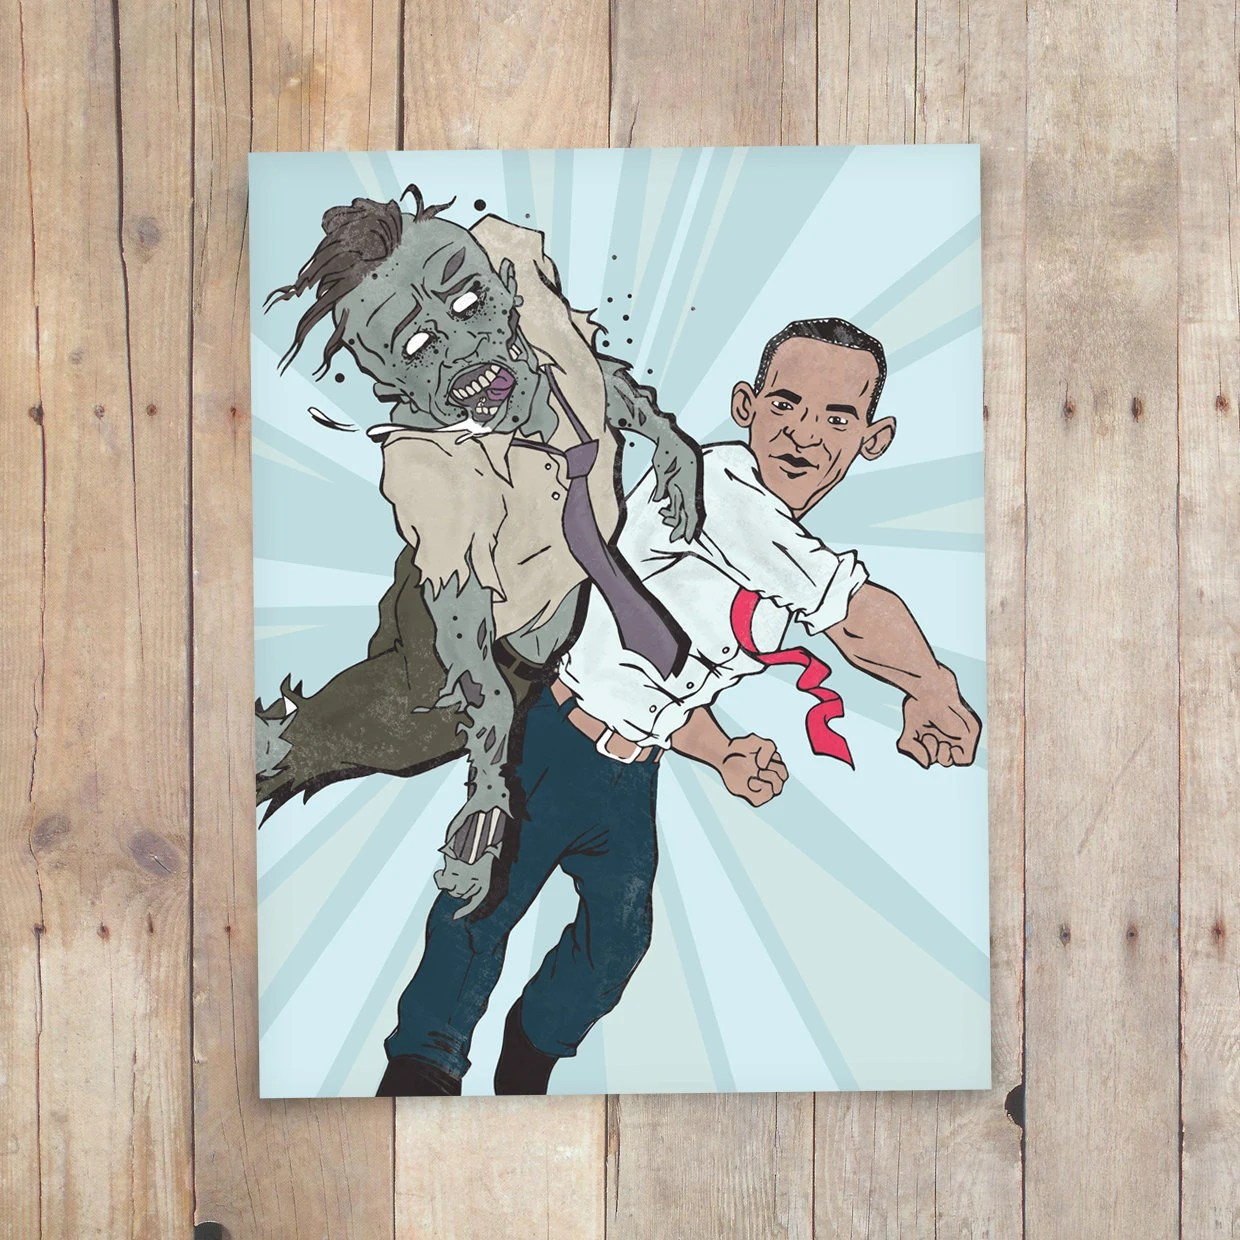 Obama Vs Zombies 2012 8.5x11 digital print - Use the code WEAREDOOMED for 15% off